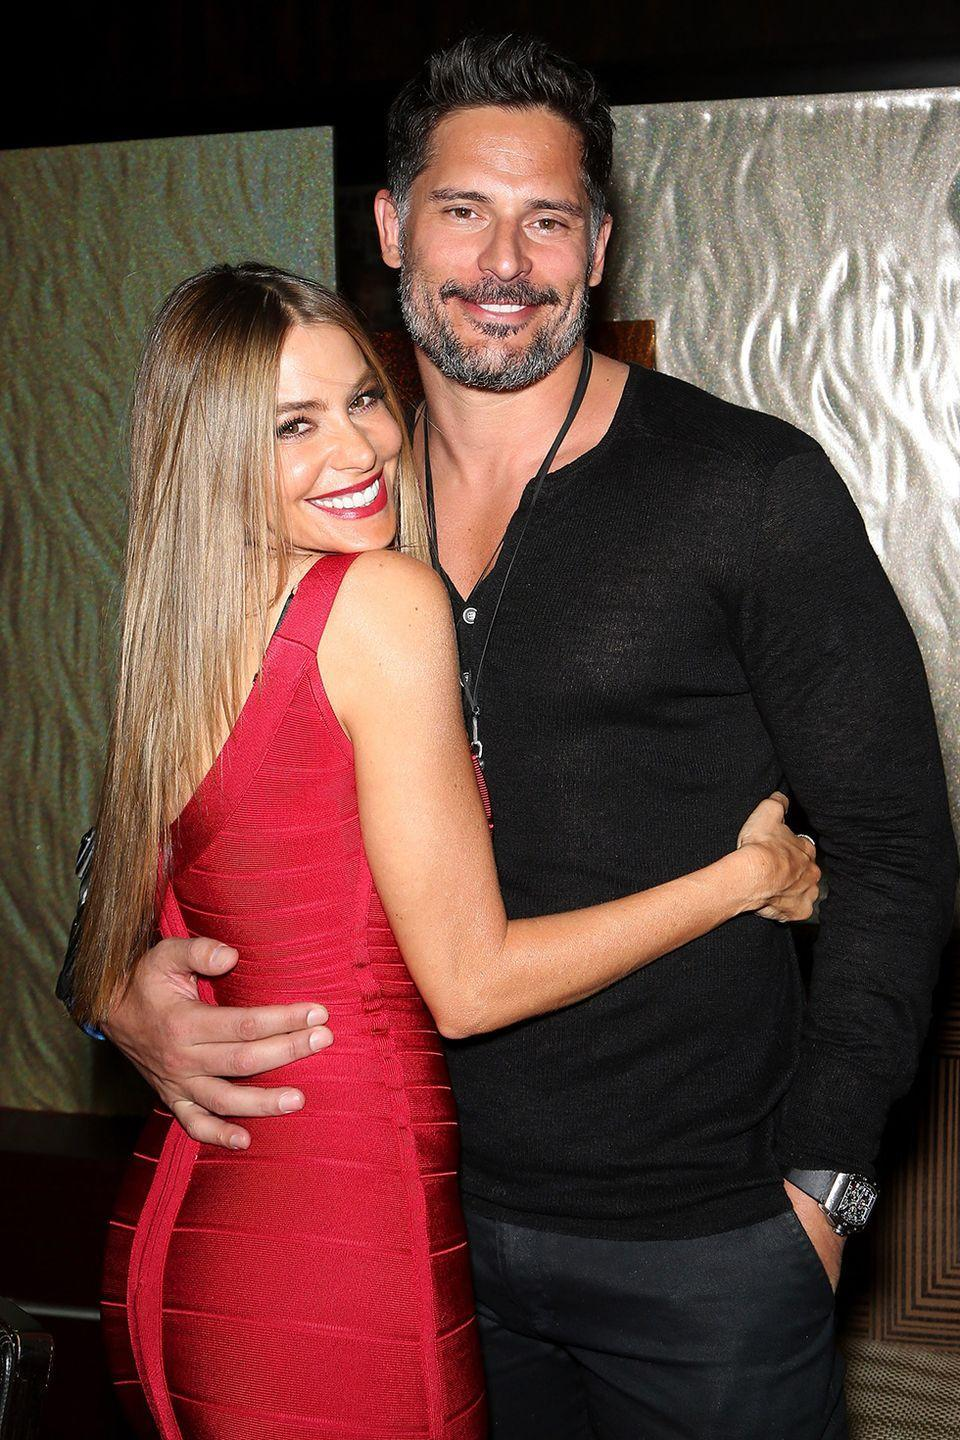 "<p><em>Modern Family</em> star Sofia and her <em>Magic Mike</em> man got engaged in Mexico following nearly six months of dating, according to <em> <a class=""link rapid-noclick-resp"" href=""https://people.com/celebrity/joe-manganiello-reveals-why-he-cannot-wait-to-marry-sofia-vergara/"" rel=""nofollow noopener"" target=""_blank"" data-ylk=""slk:People"">People</a></em>. After getting married in 2015, they're still blissfully wed today.</p>"